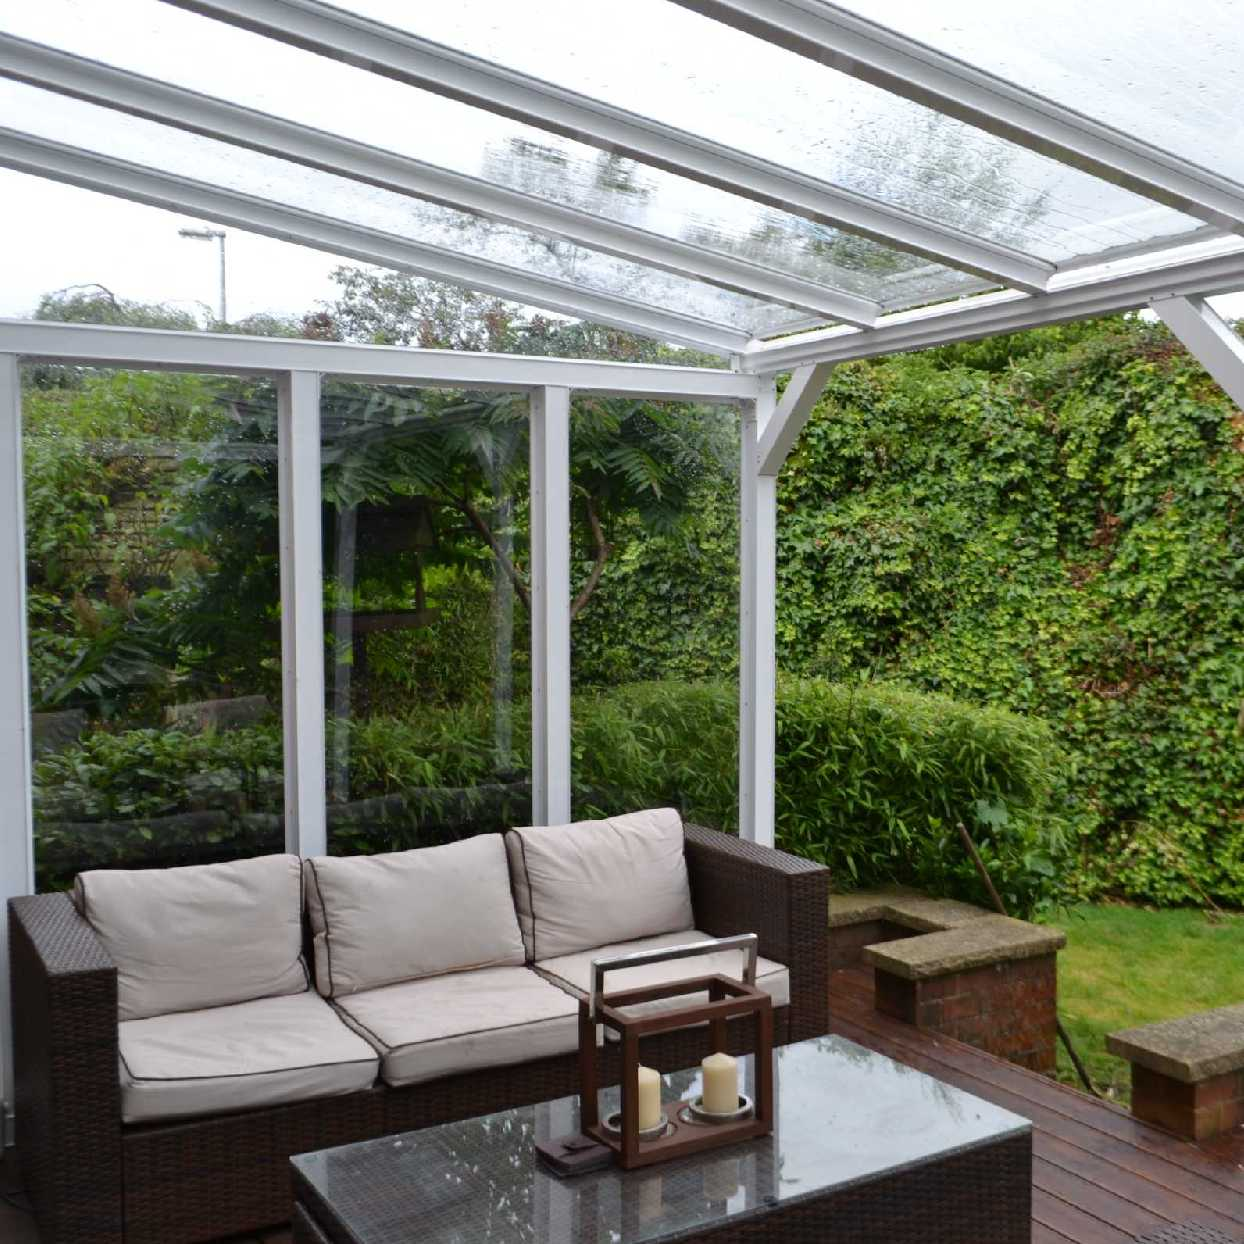 Omega Smart White Lean-To Canopy UNGLAZED for 6mm Glazing - 7.0m (W) x 1.5m (P), (4) Supporting Posts